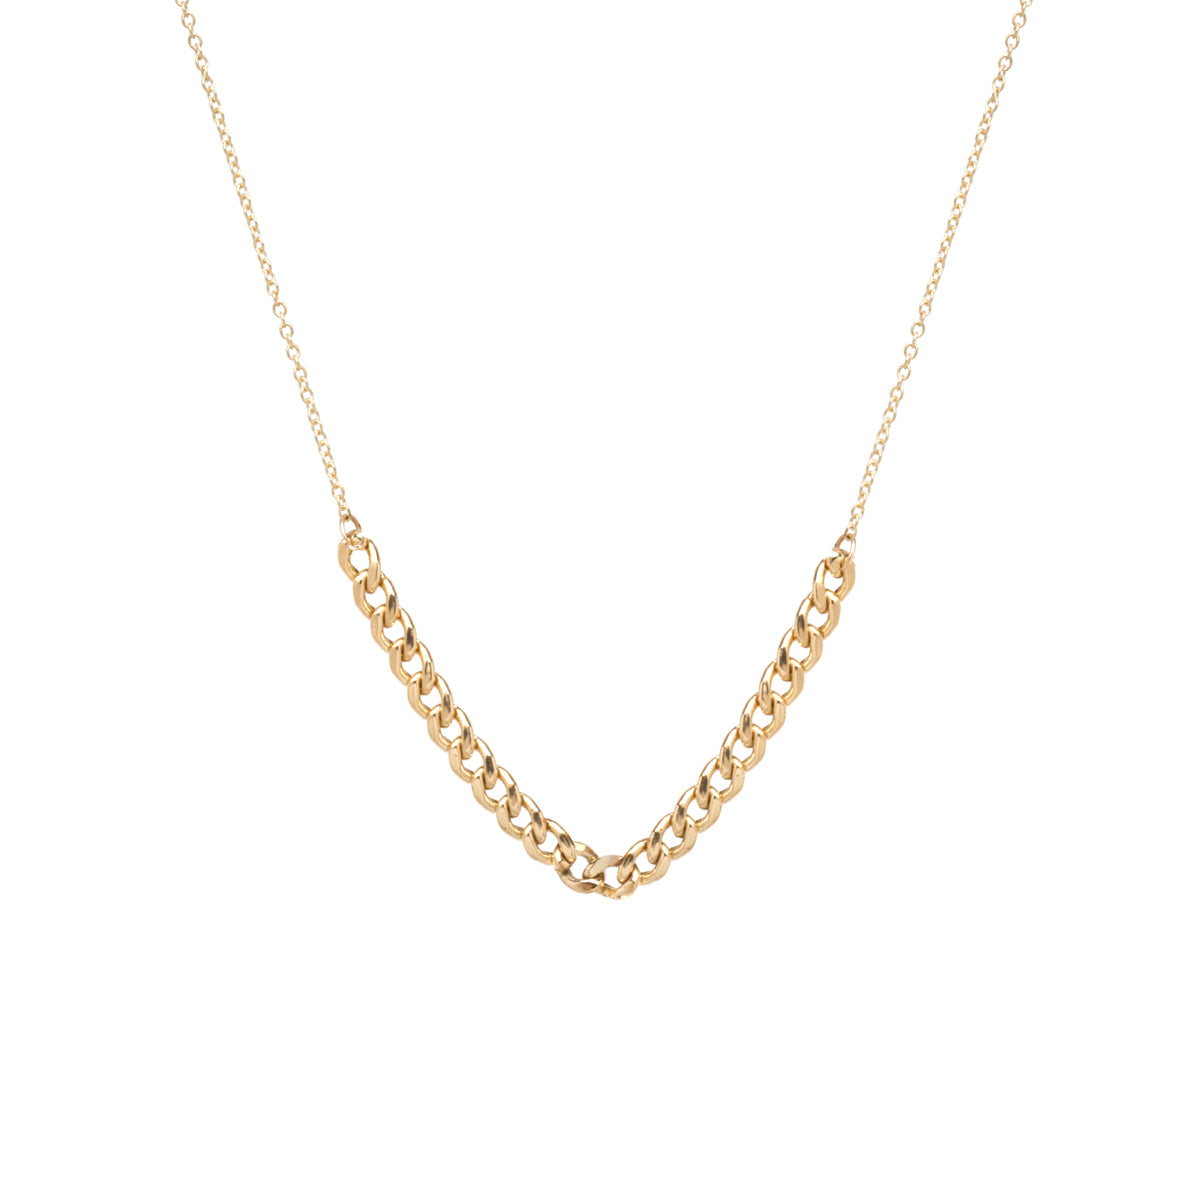 14k gold medium curb chain station necklace